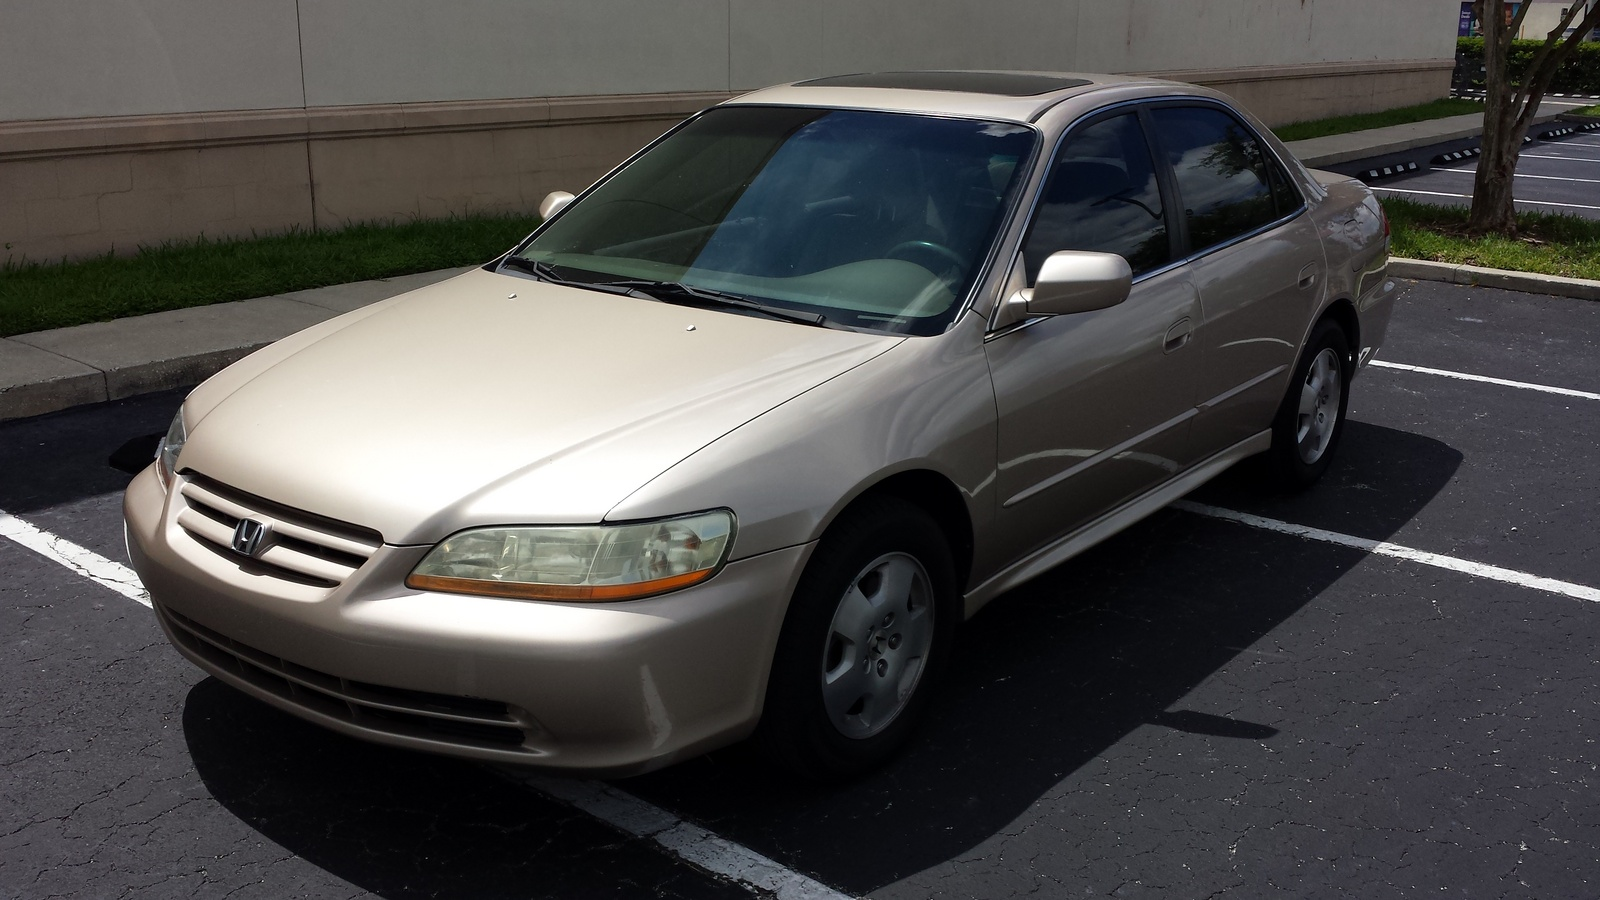 Honda Accord 3.0 2001 photo - 9